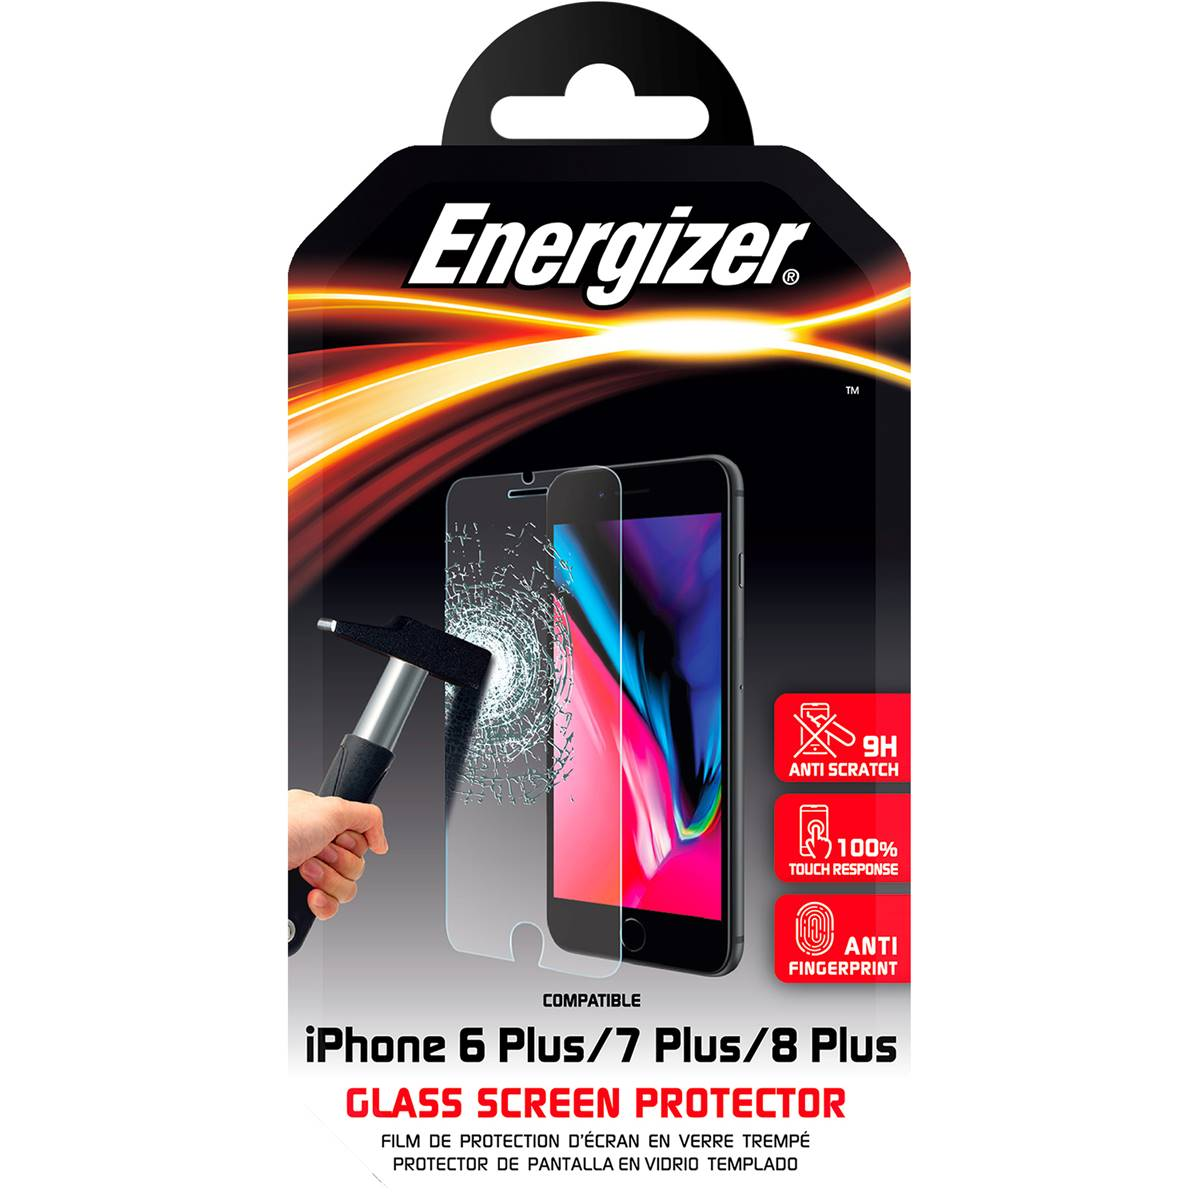 Energizer Tempered Glass Screen Protector - iPhone 6s Plus/ 7 Plus/ 8 Plus